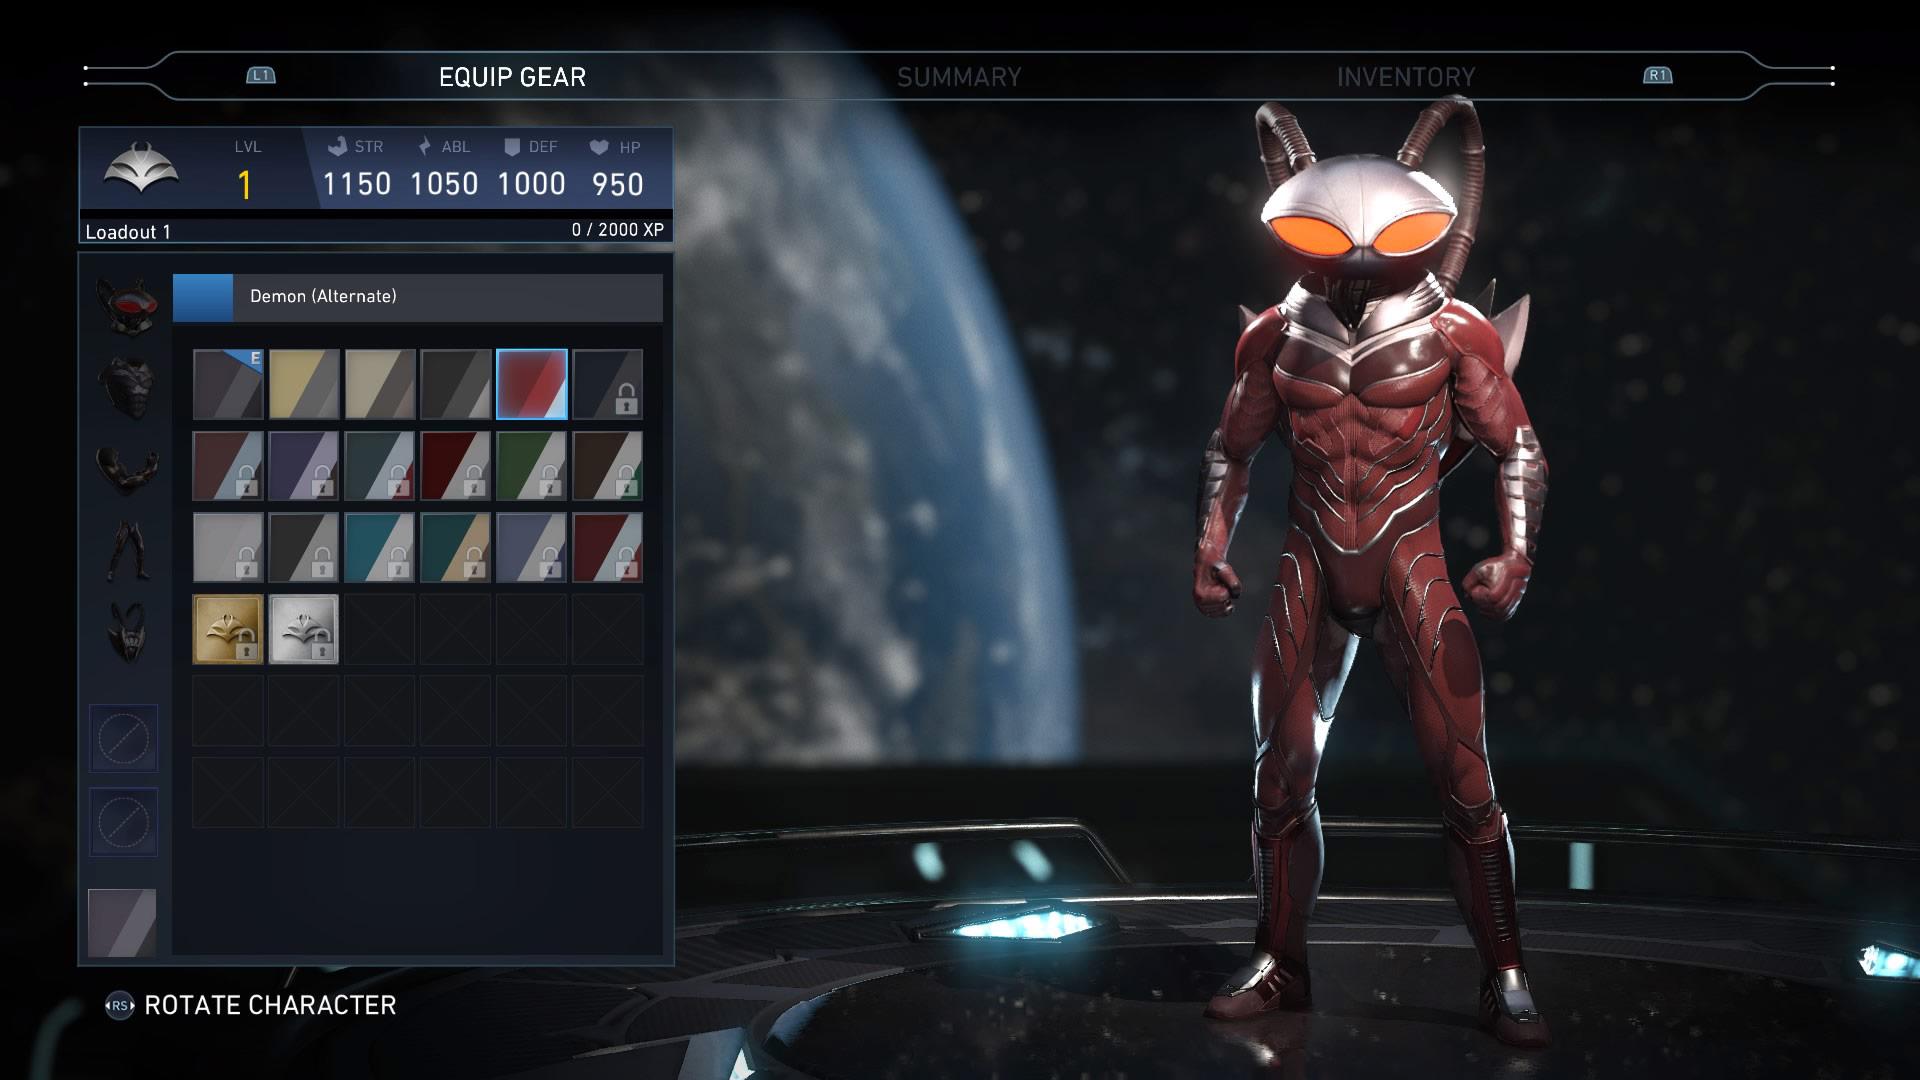 Black Manta screenshots in Injustice 2 2 out of 7 image gallery